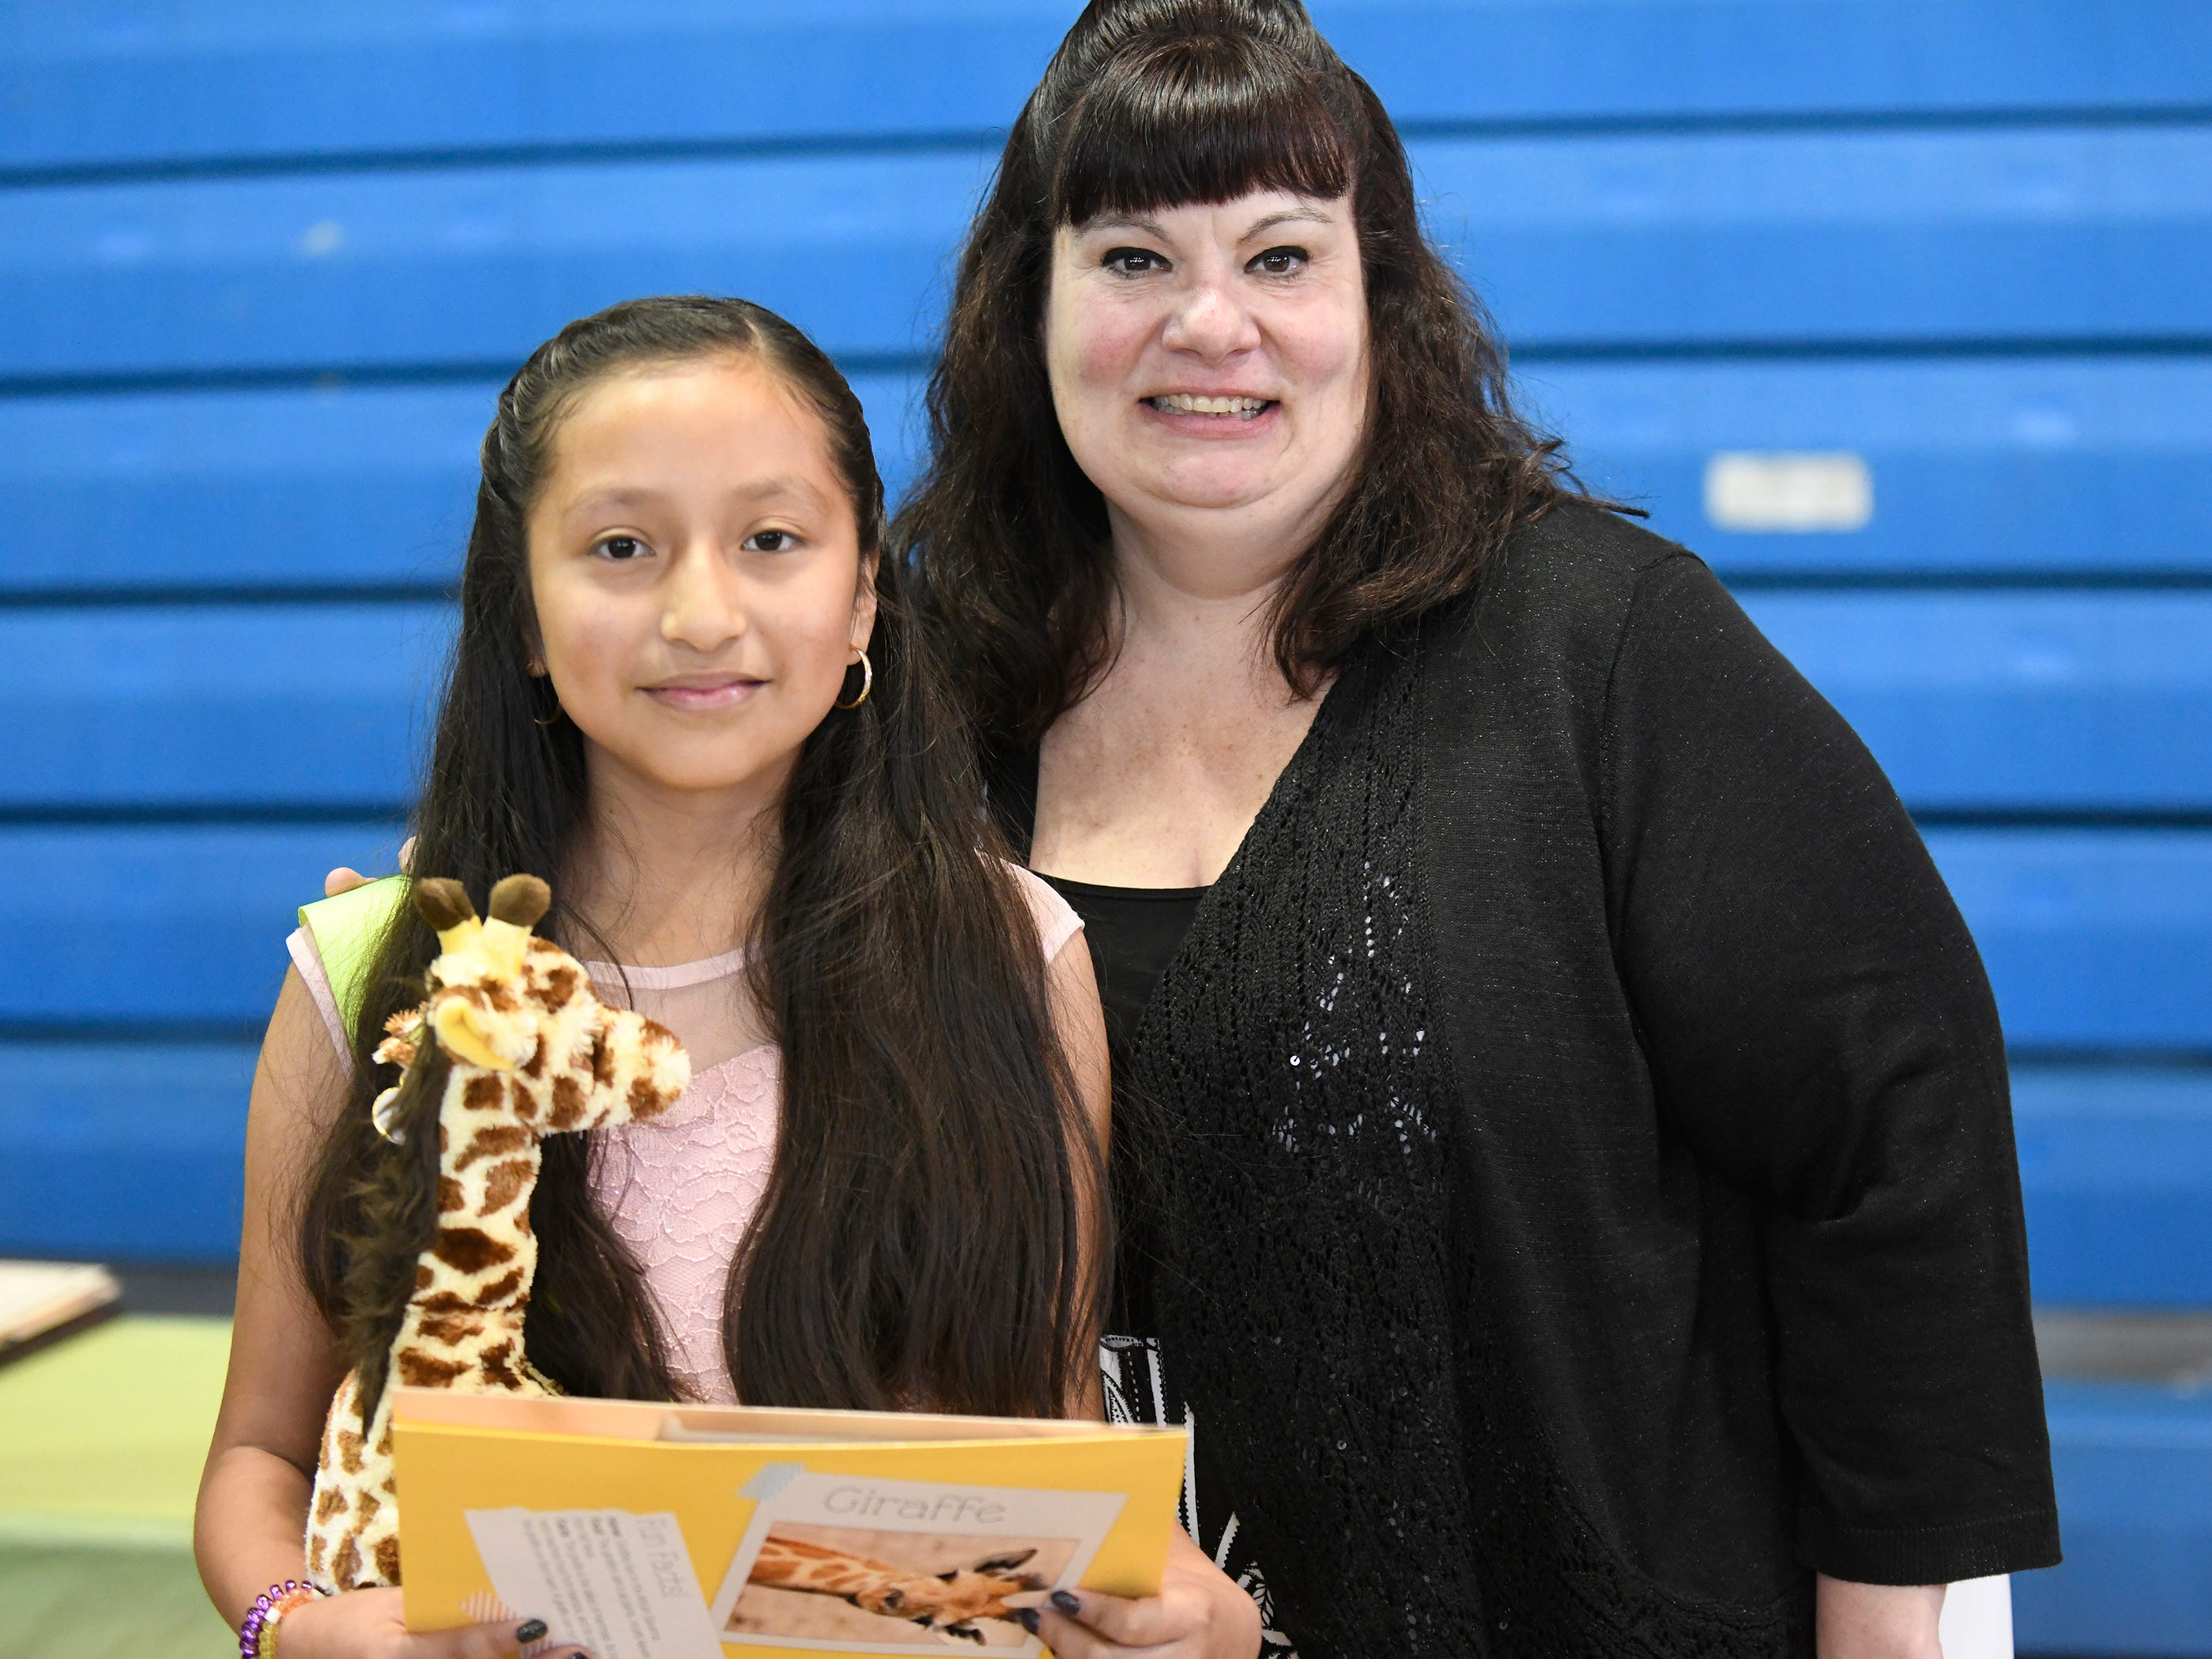 Marie Durand Elementary School student Marely Garcia Flores was presented with a Giraffe Hero Award during a special ceremony on Wednesday, May 15, 2019.